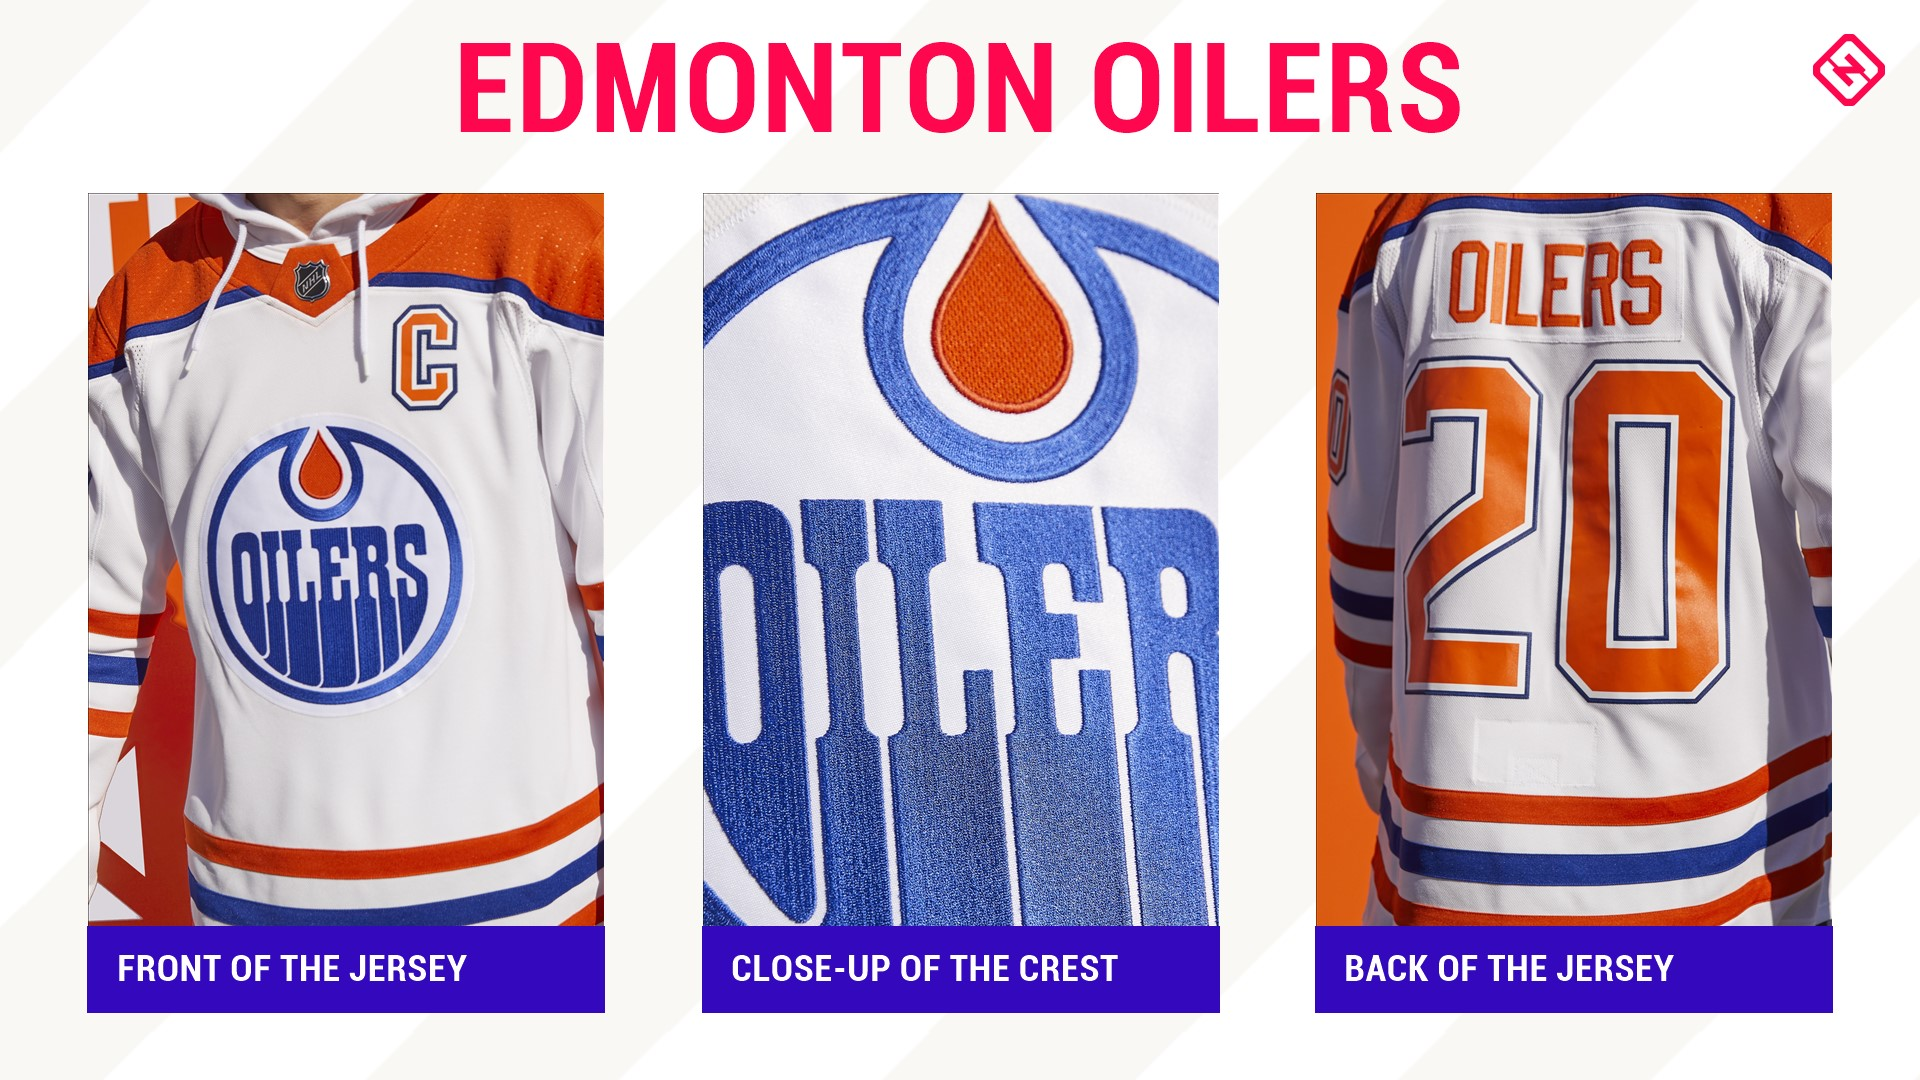 Nhl Reverse Retro Jerseys Ranked The Best Worst Of Adidas 2021 Designs For Every Team Report Door